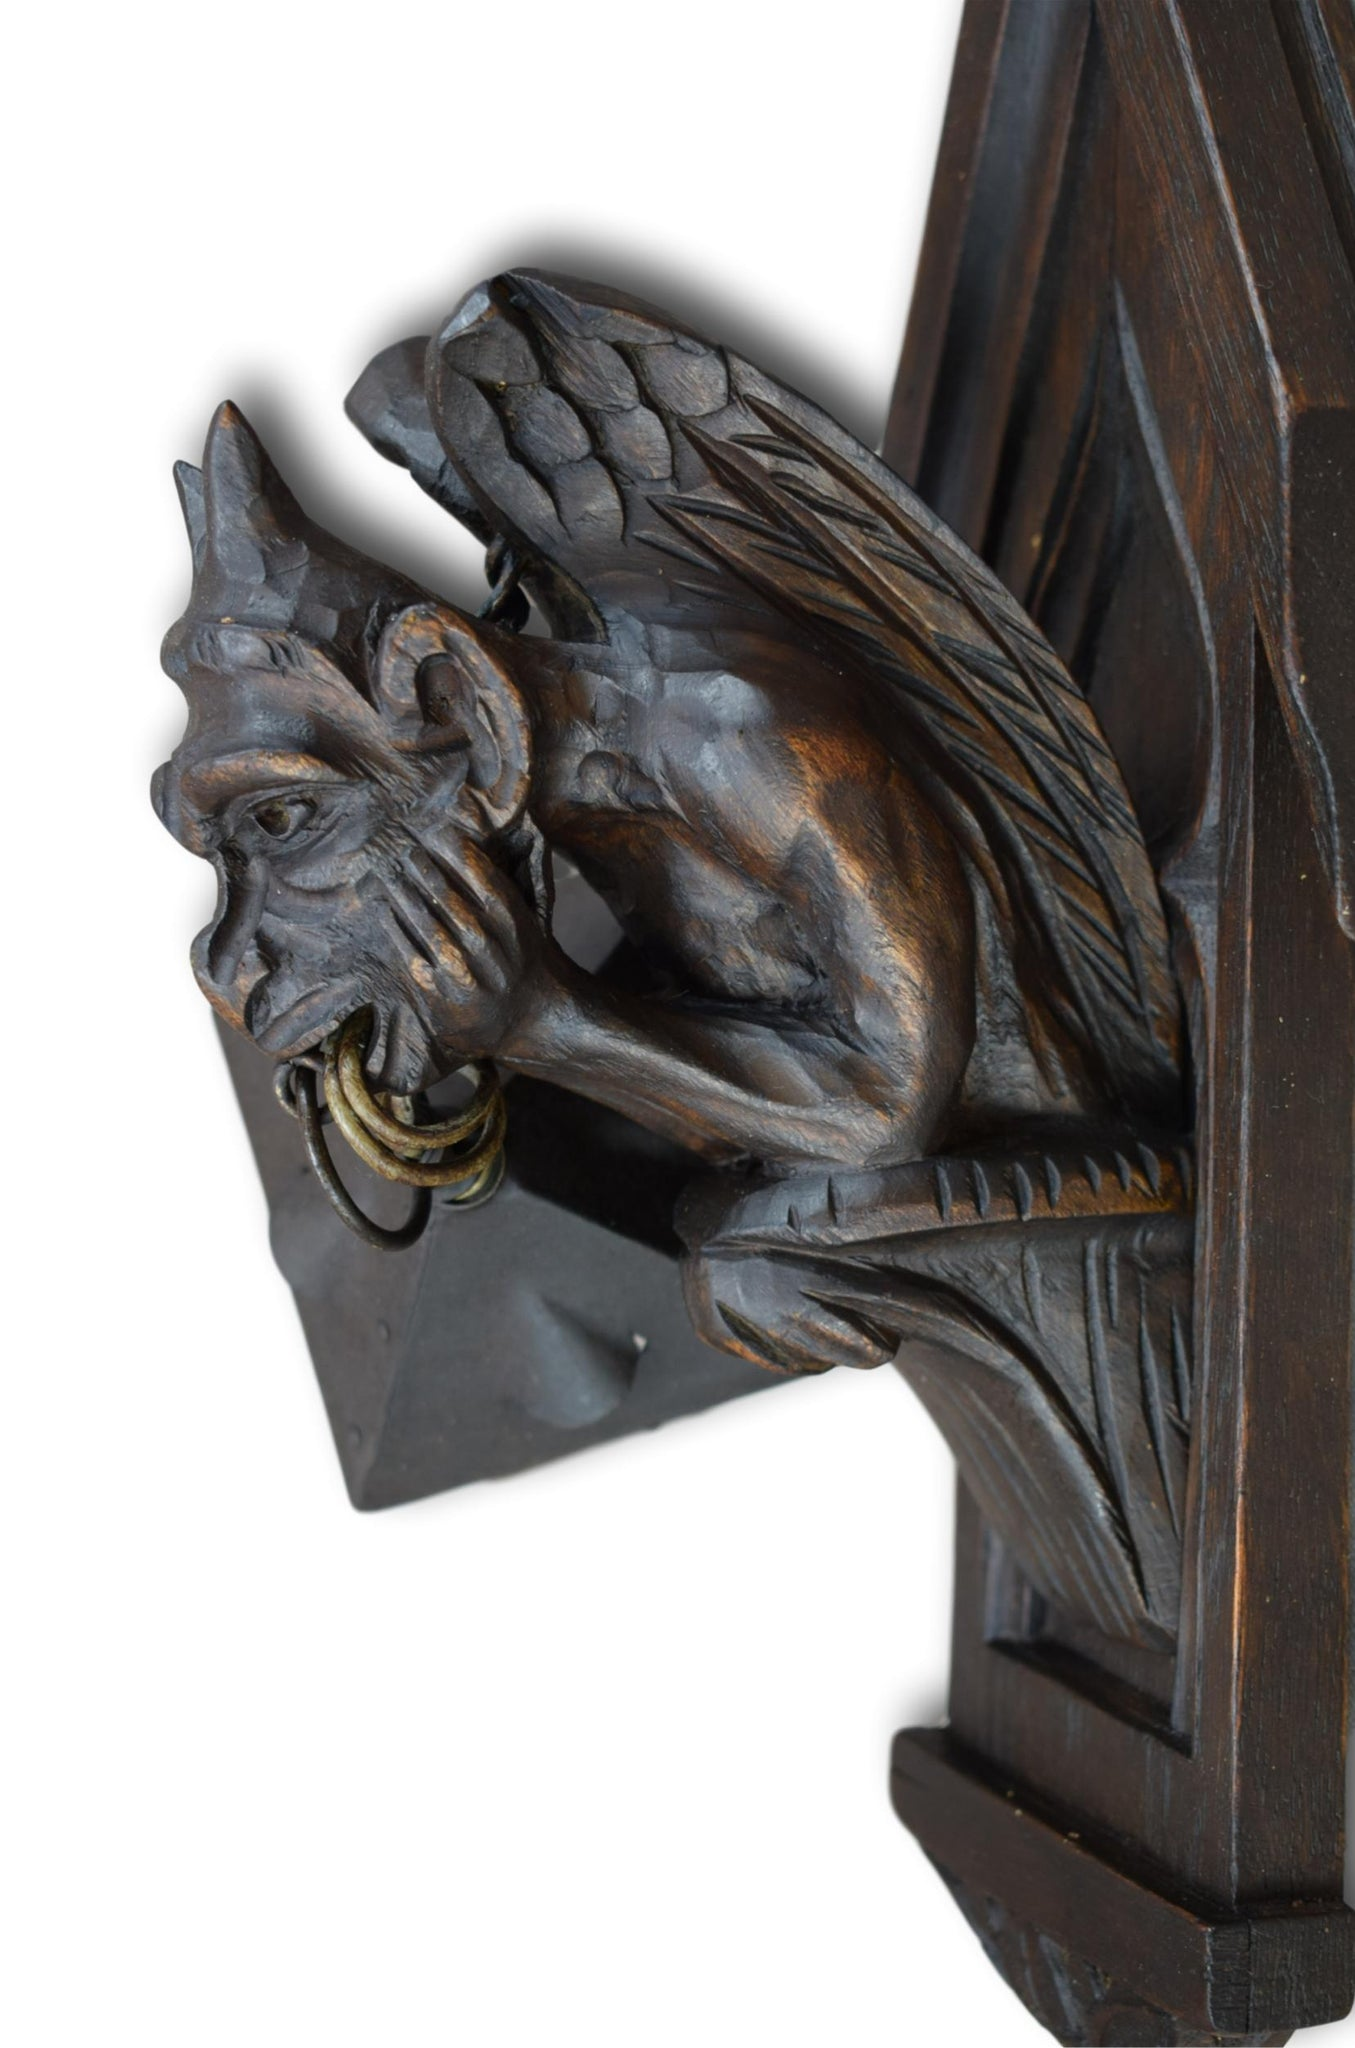 Gargoyle Wall Sconce - Charmantiques